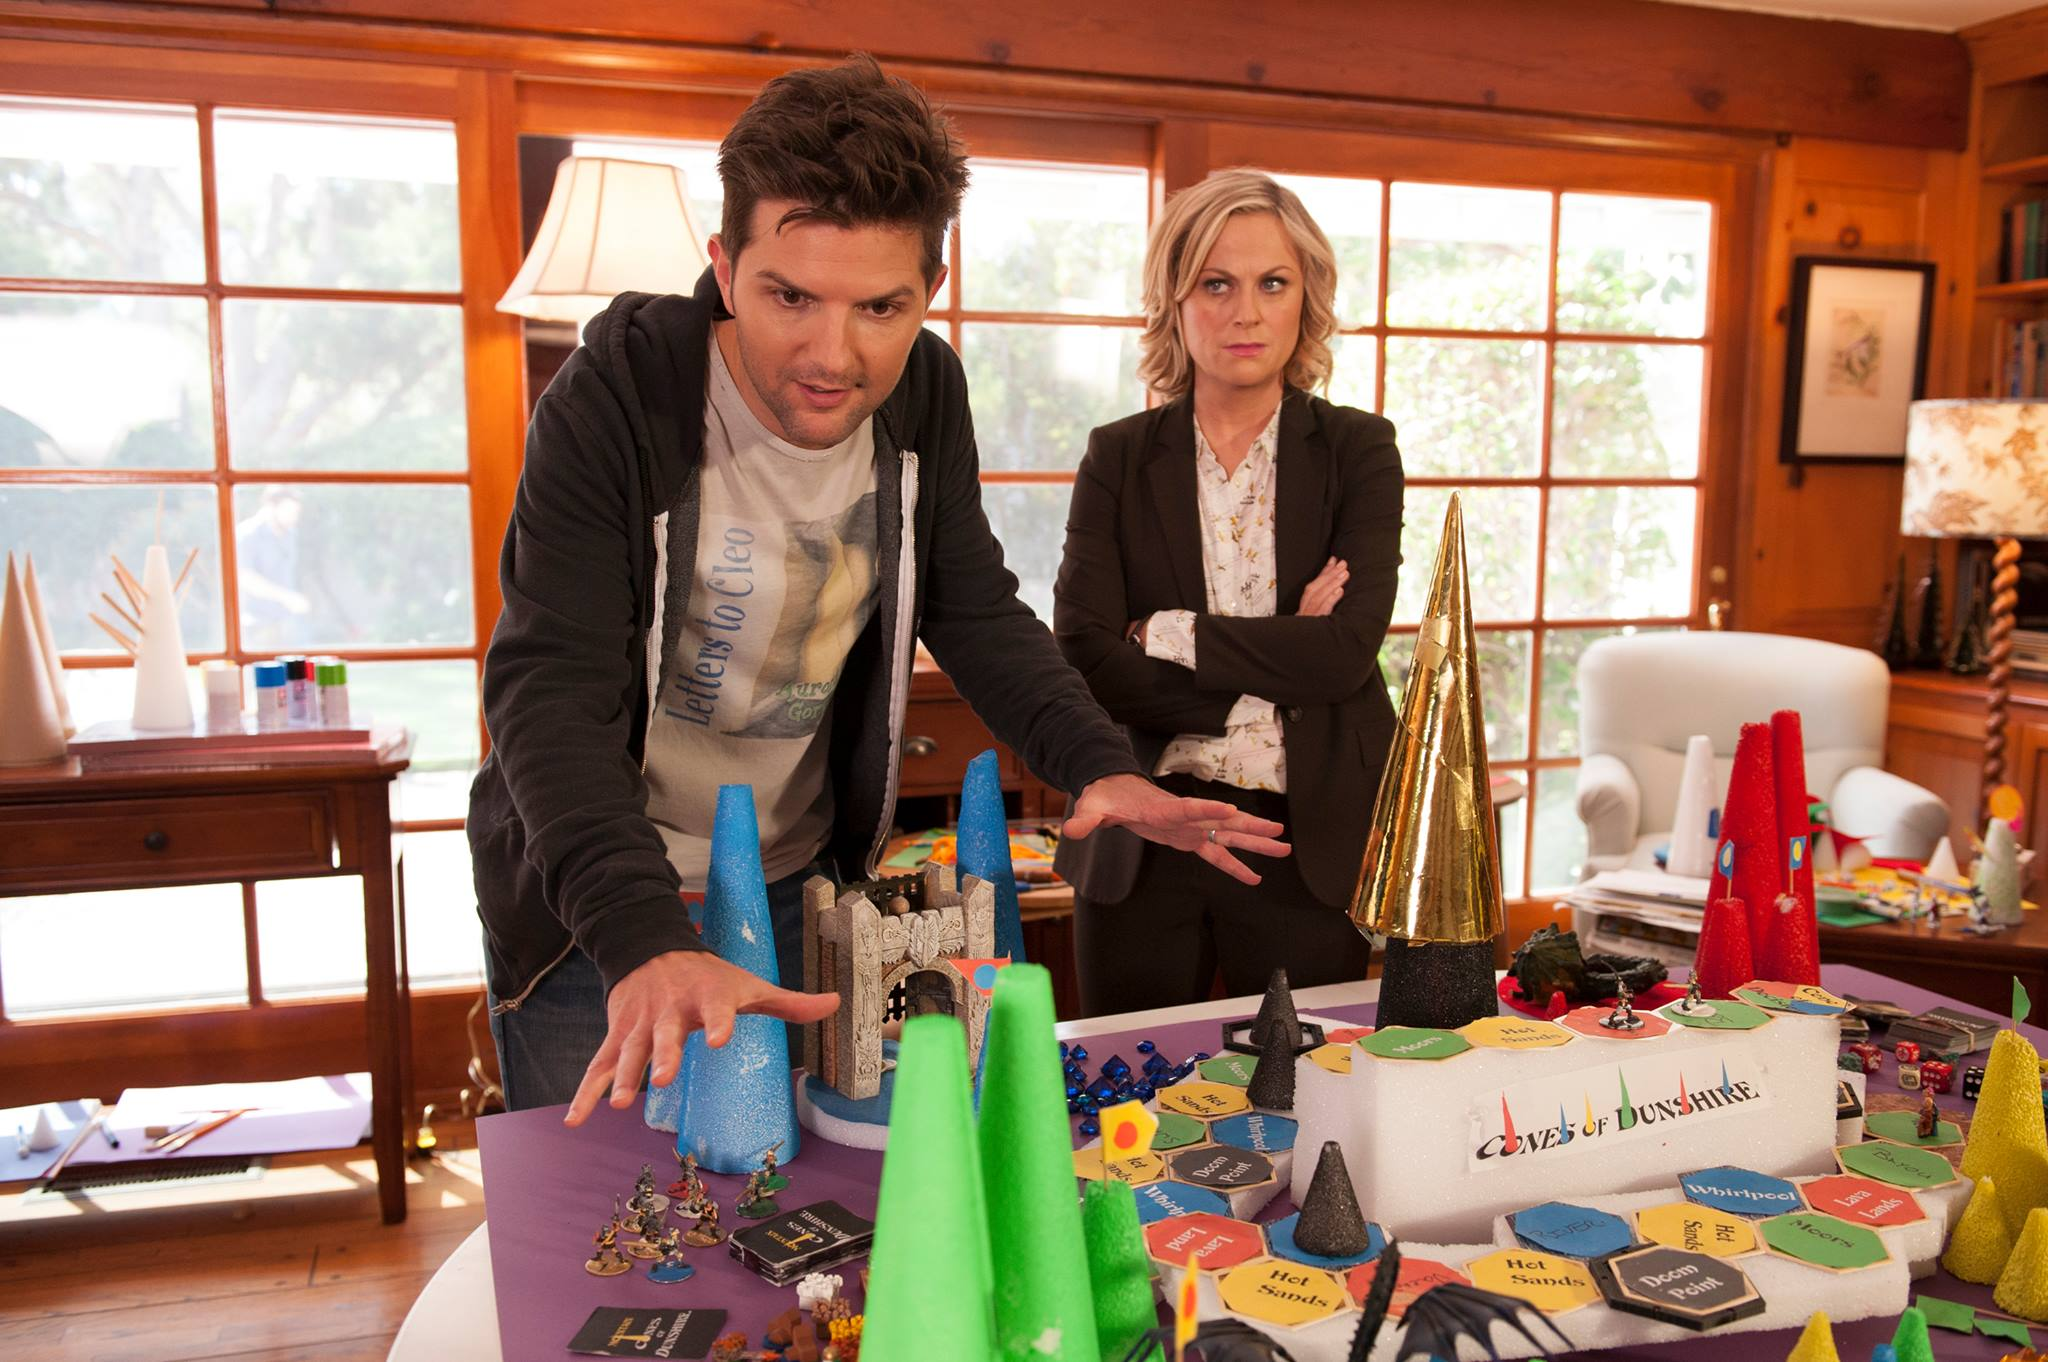 Parks and Recreation - 06x09 - The Cones of Dunshire